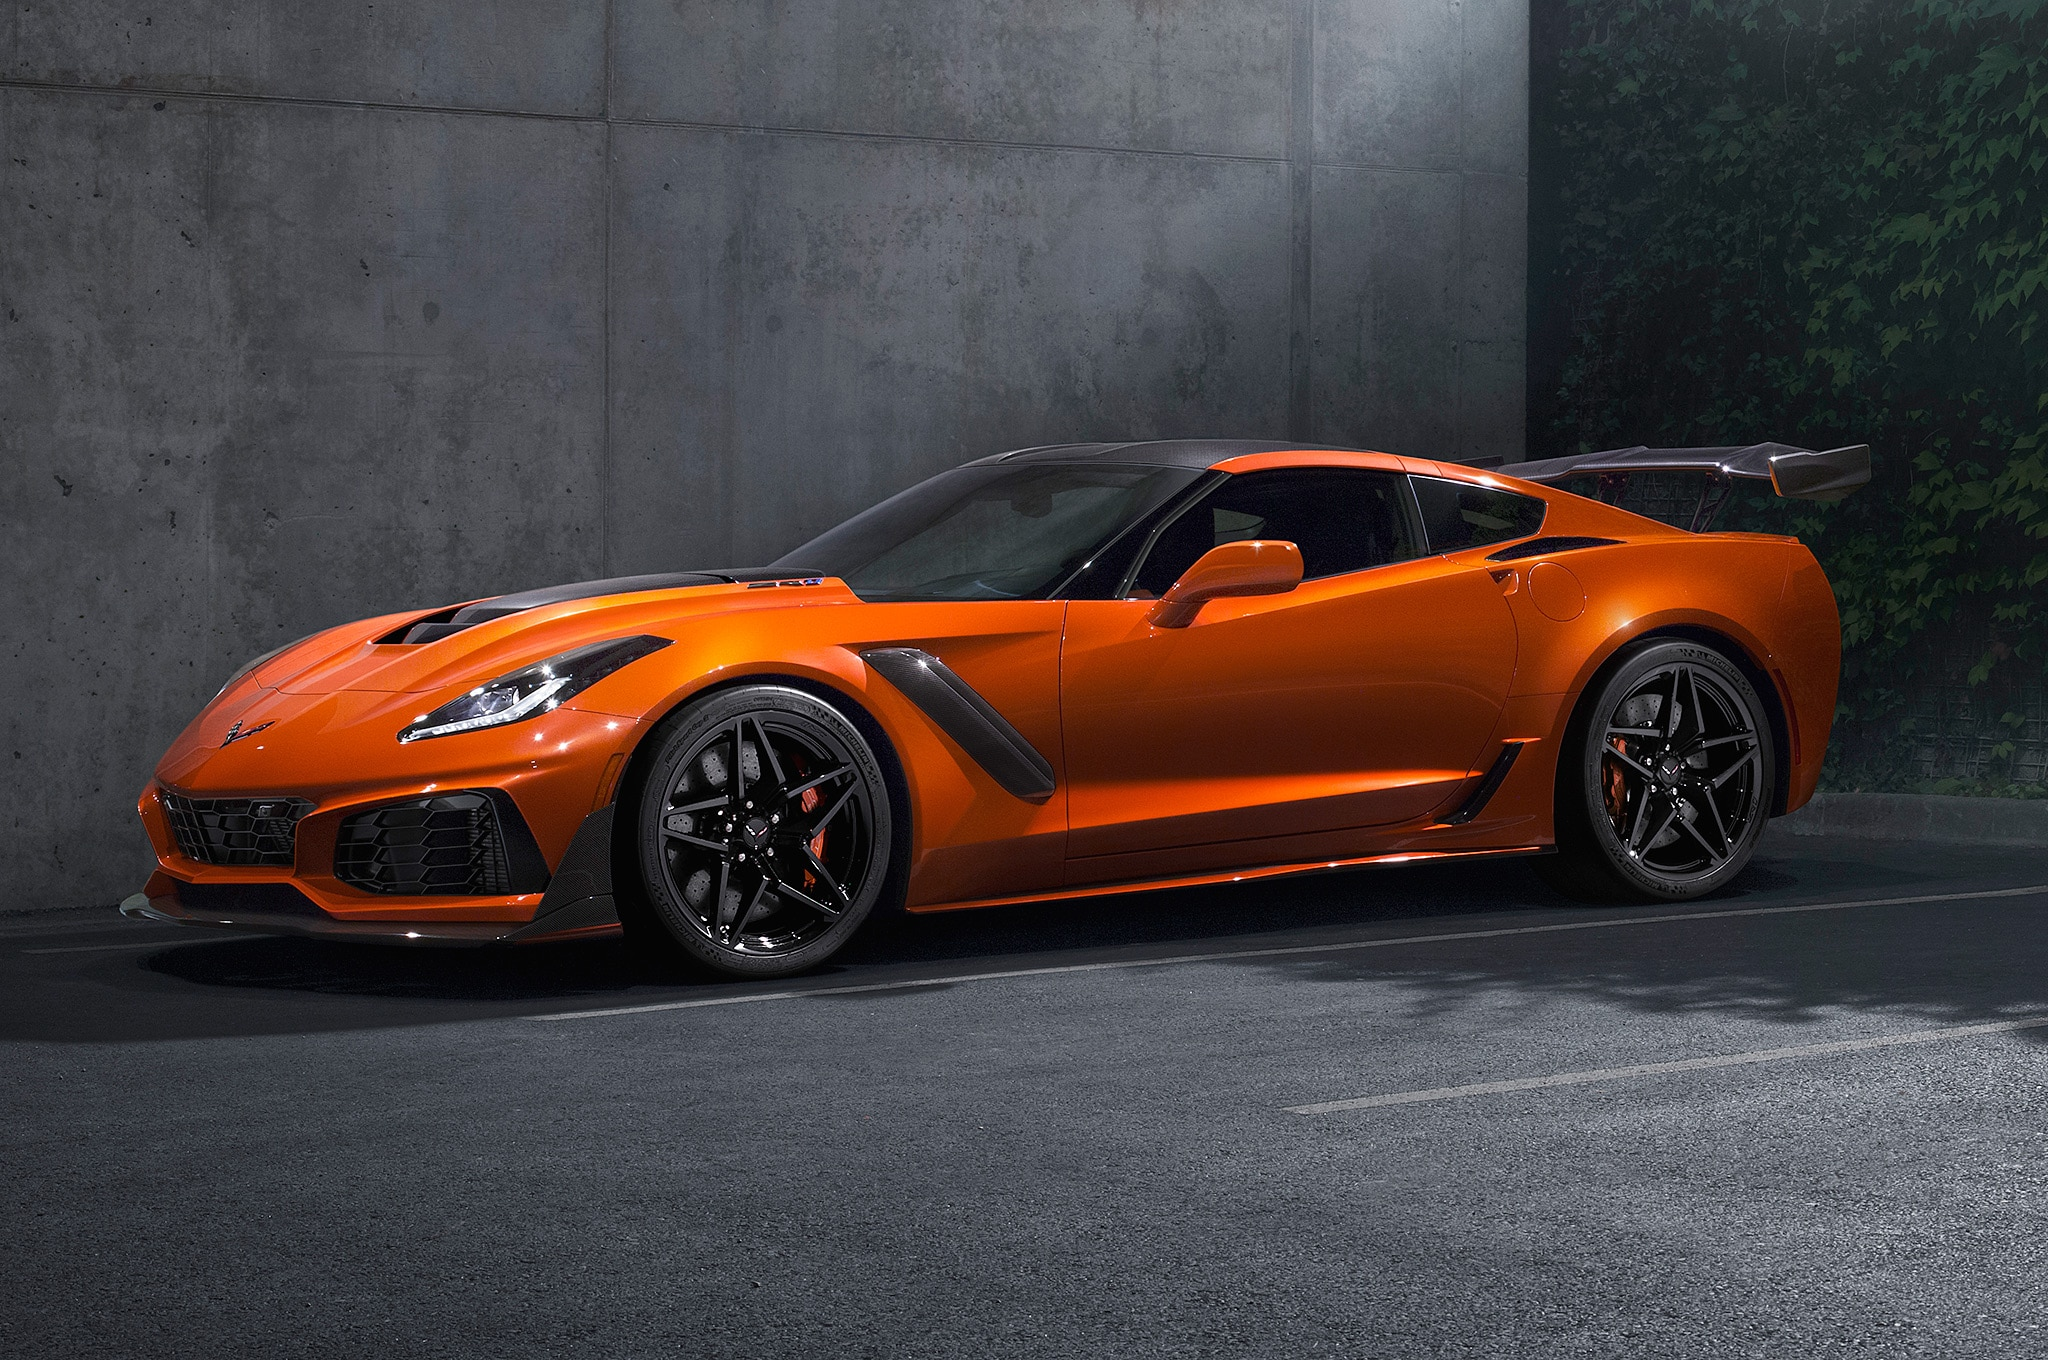 Corvette Stingray Top Speed >> 755 Horsepower 2019 Chevy Corvette Zr1 Is The Fastest Most Powerful